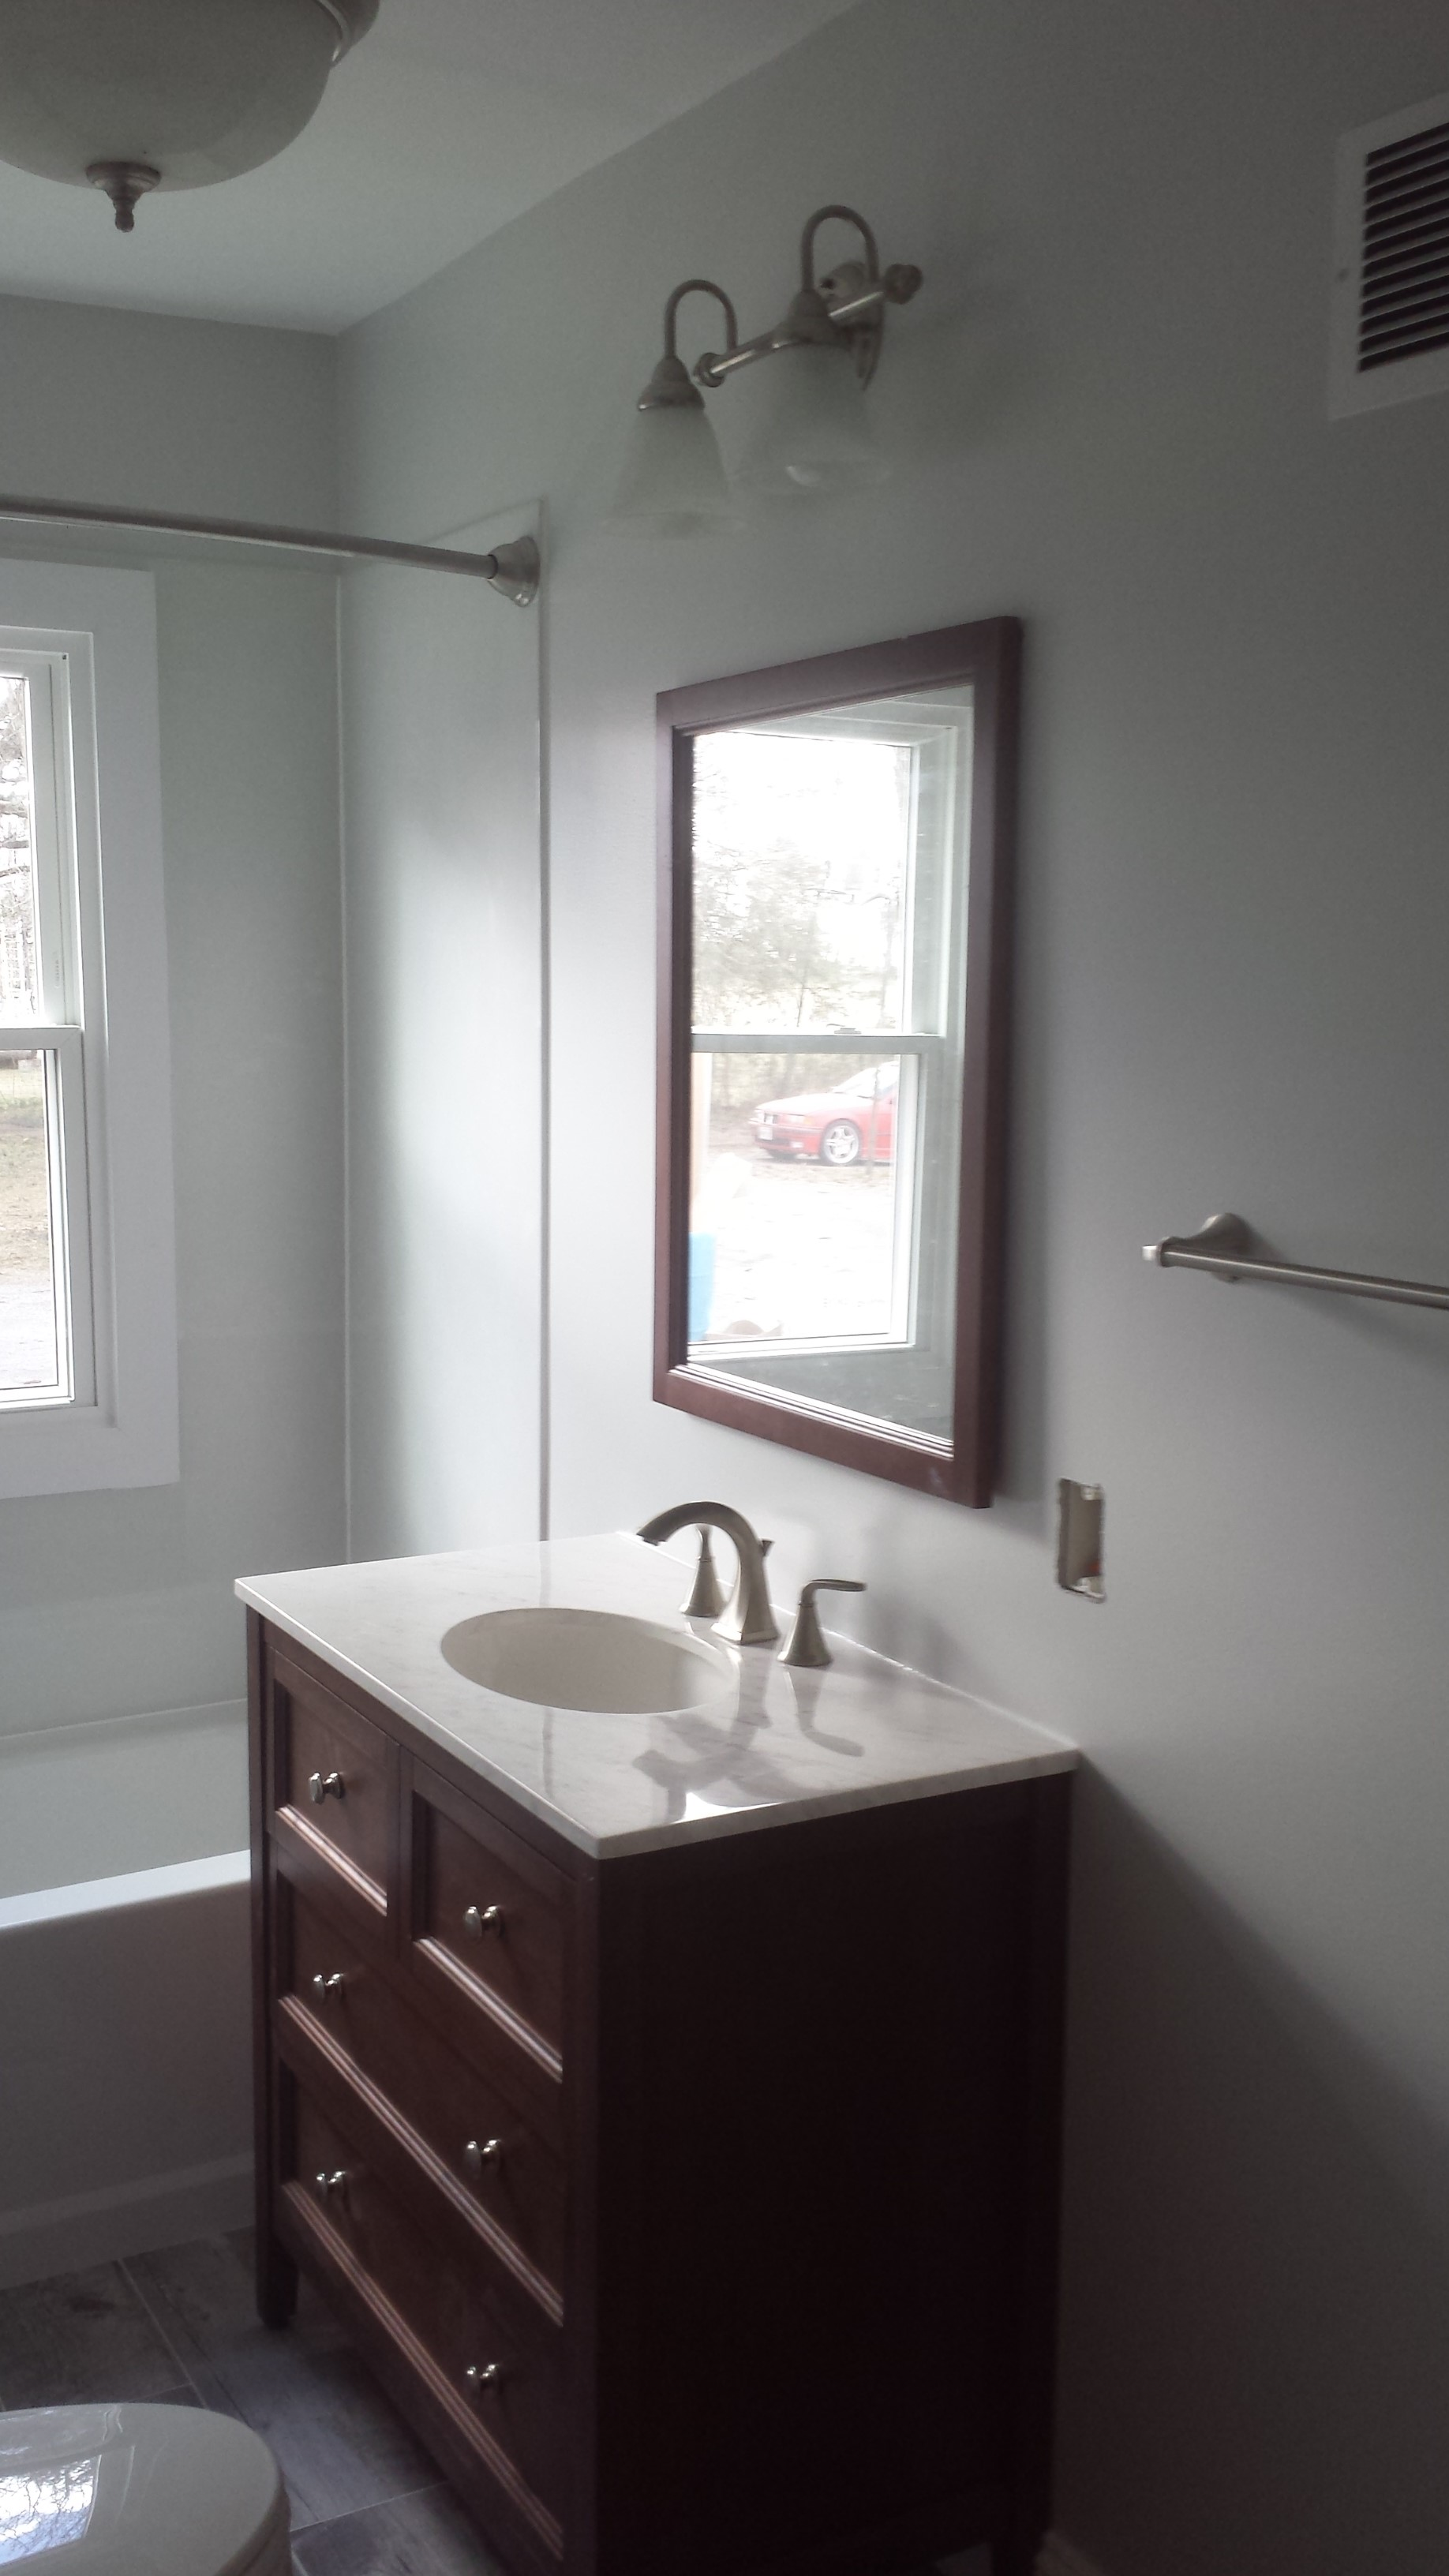 A Custom Bathroom Remodel Gets You The Space You Want - Quality advantage bathroom remodeling